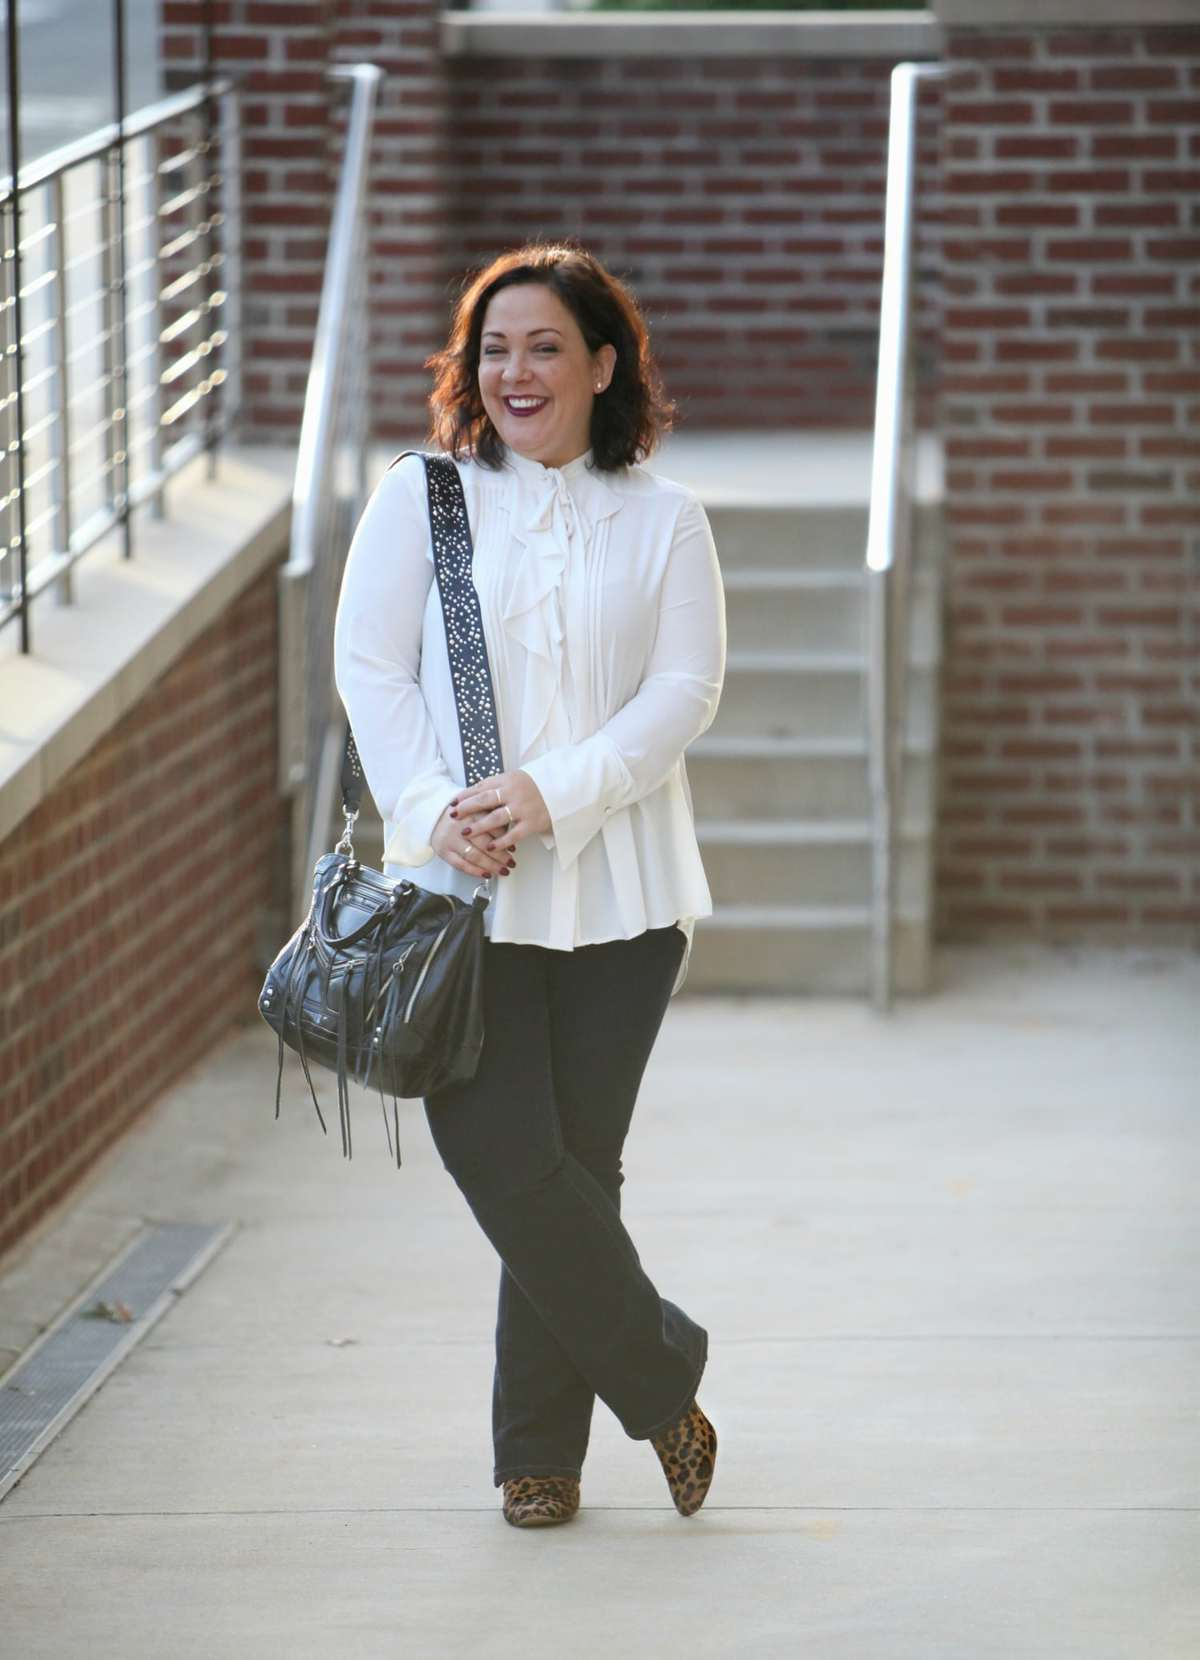 Wardrobe Oxygen, over 40 blogger in Ann Taylor blouse, JAG Jeans, Rebecca Minkoff moto bag and leopard calfhair ankle boots